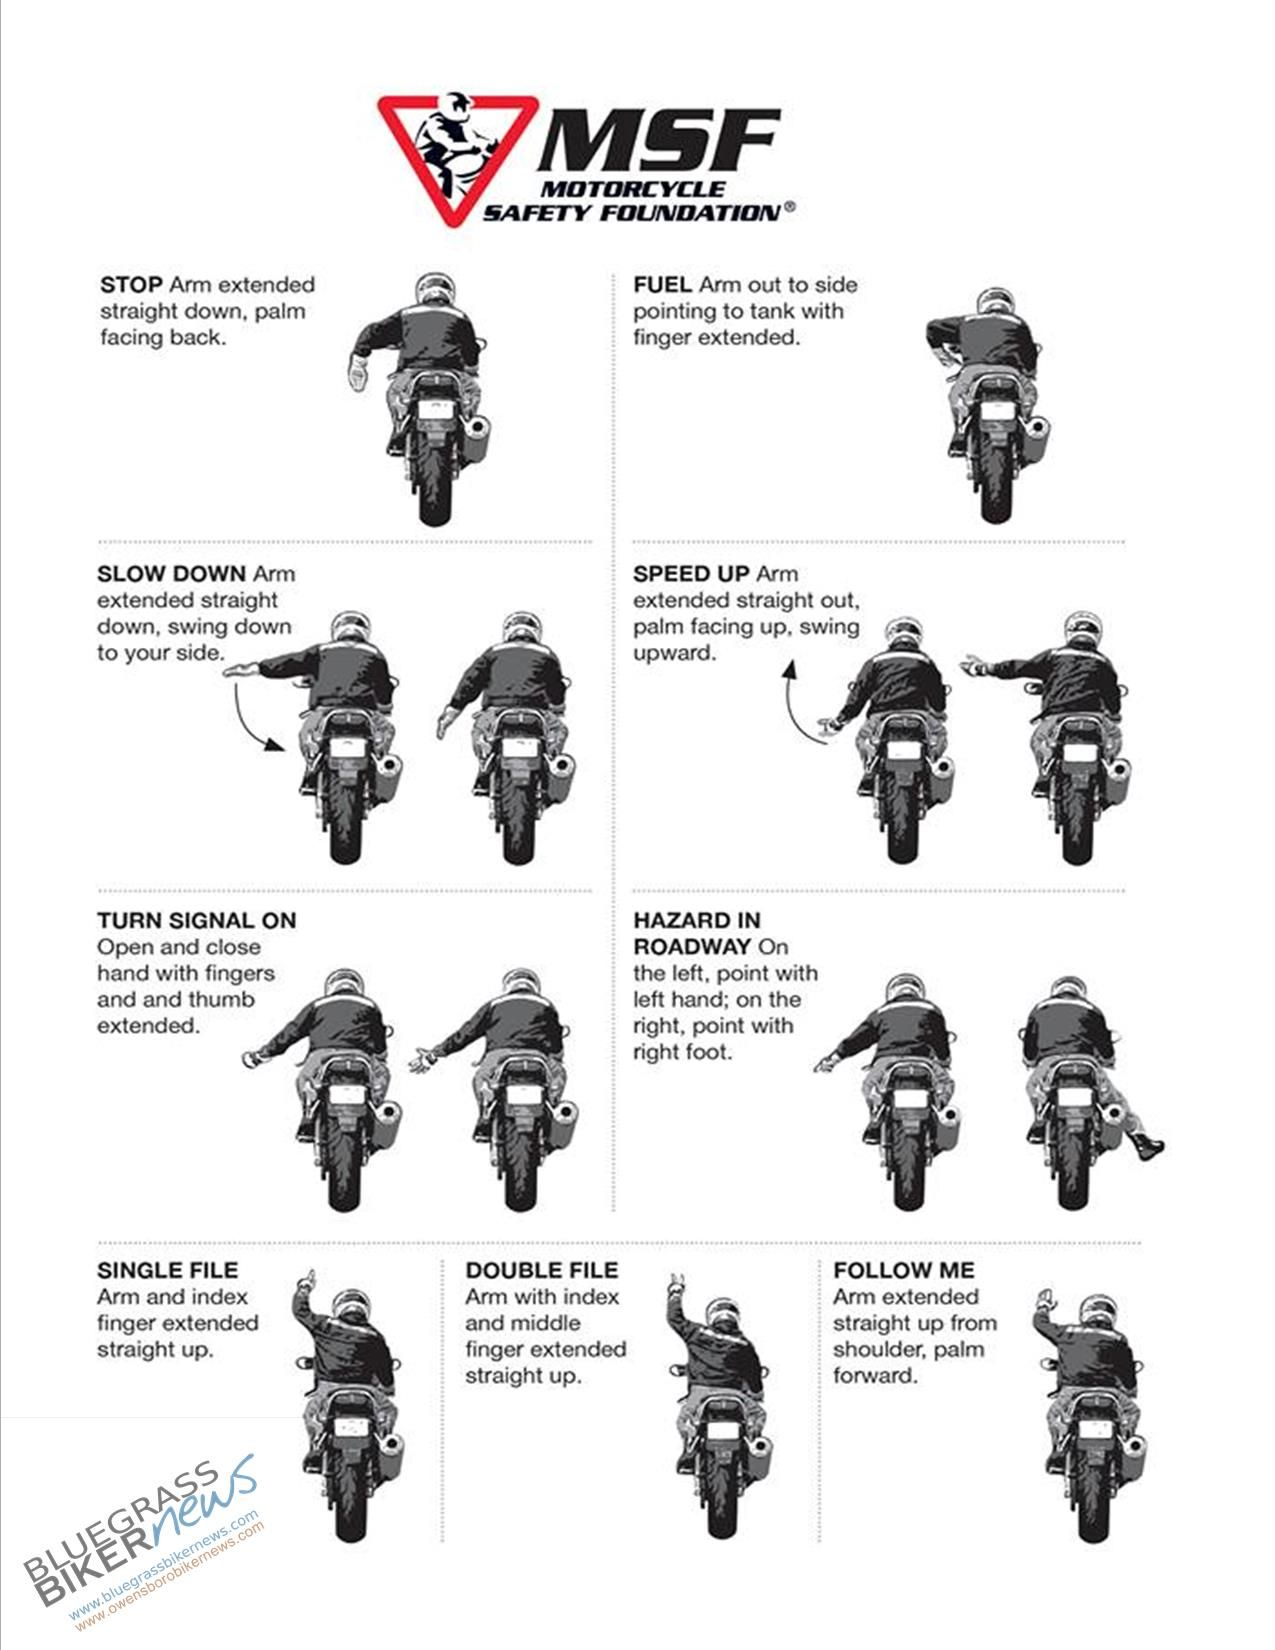 Rough Riders Mc Motorcycle Club Auto Electrical Wiring Diagram Toro Timecutter Ss4235 Related With